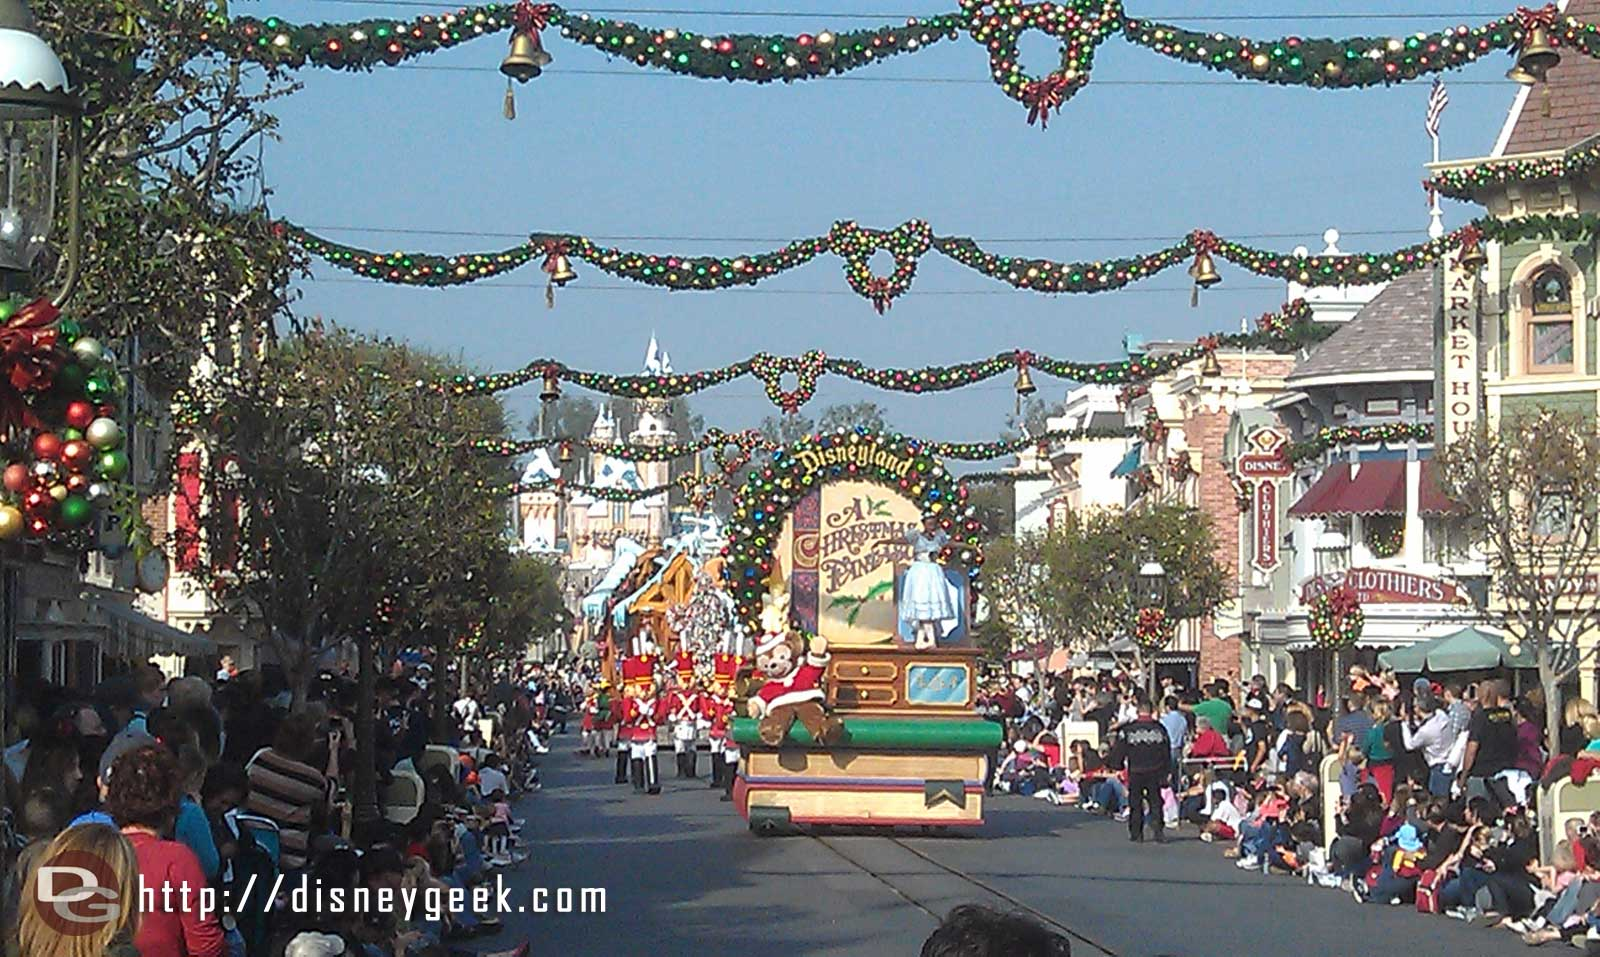 A Christmas Fantasy parade making its way down Main Street.